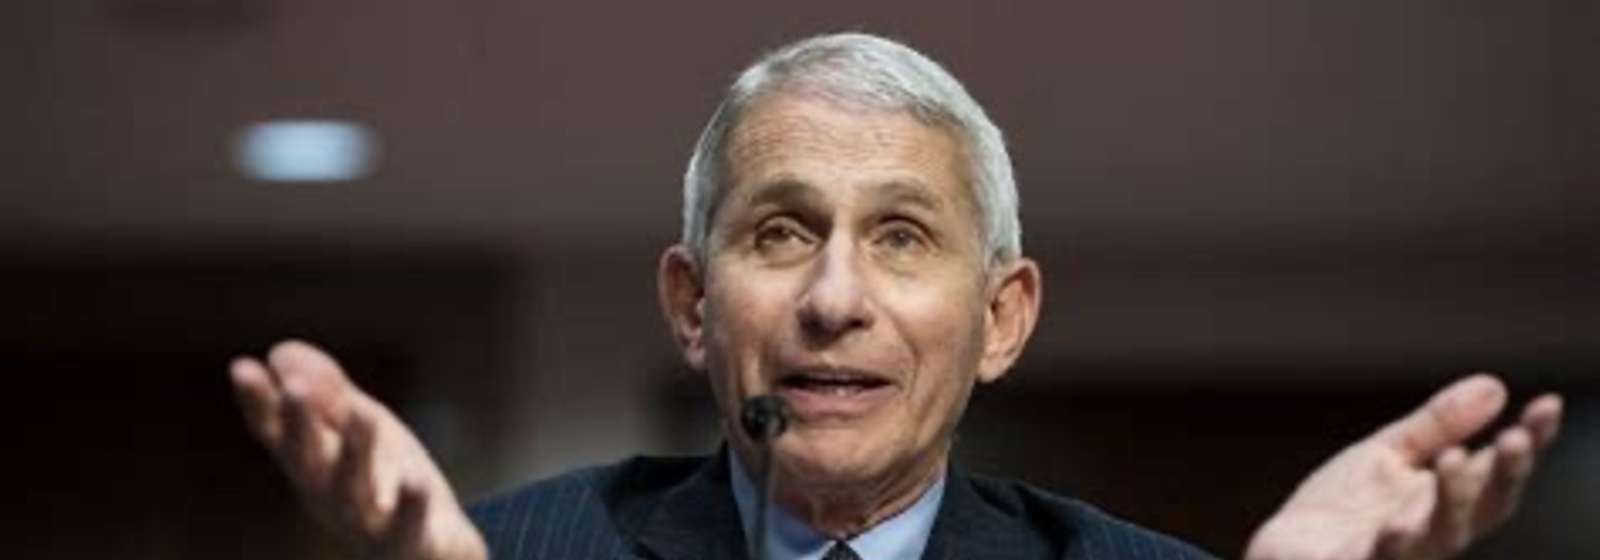 Fauci Backs Down on Federal Vaccine Passports, Still Pushing Private Sector